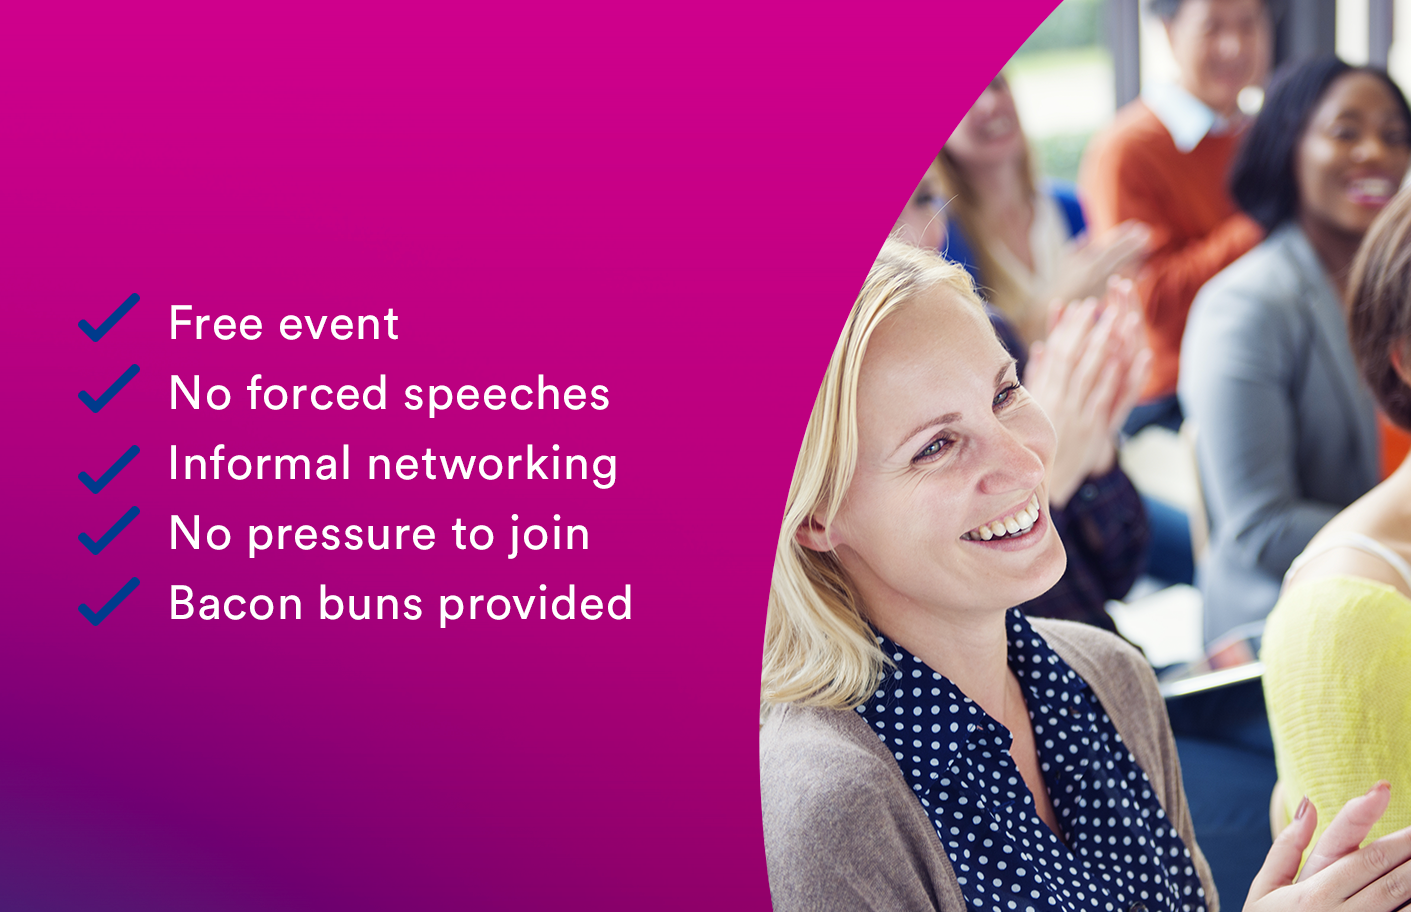 Join us for informal networking and breakfast